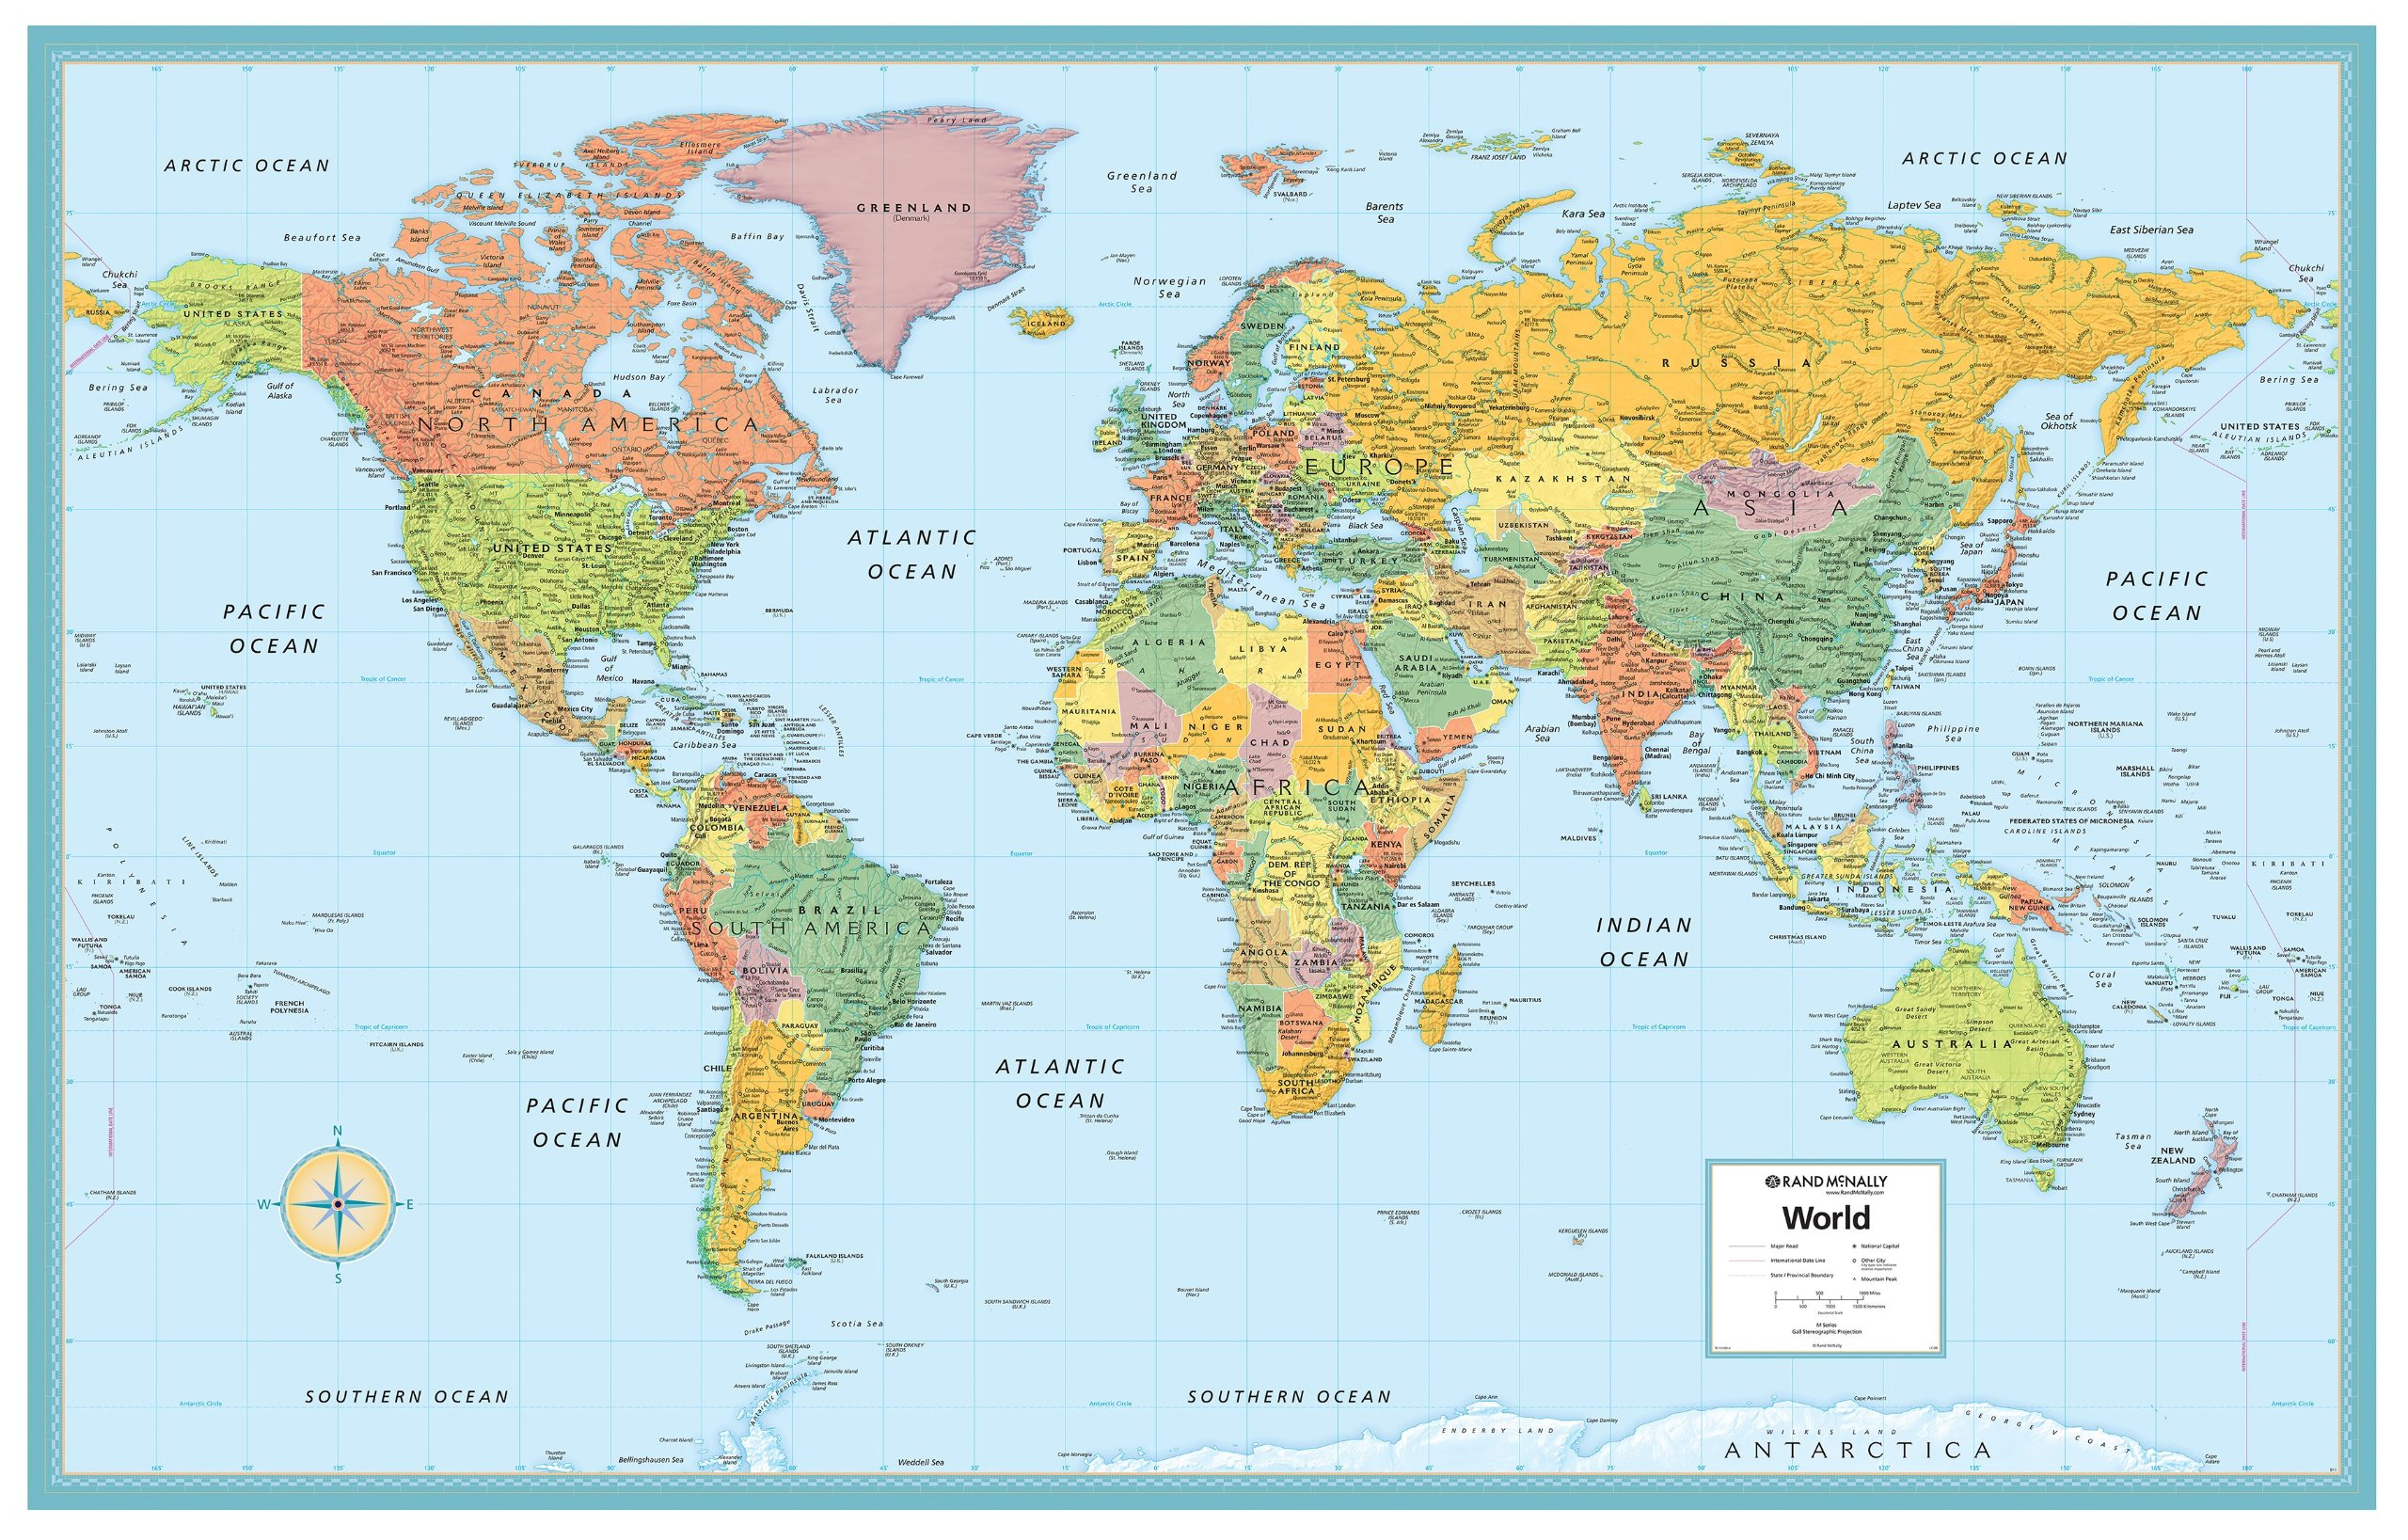 Rand mcnally deluxe laminated world wall map rand mcnally rand mcnally deluxe laminated world wall map rand mcnally 9780528959974 amazon books gumiabroncs Image collections